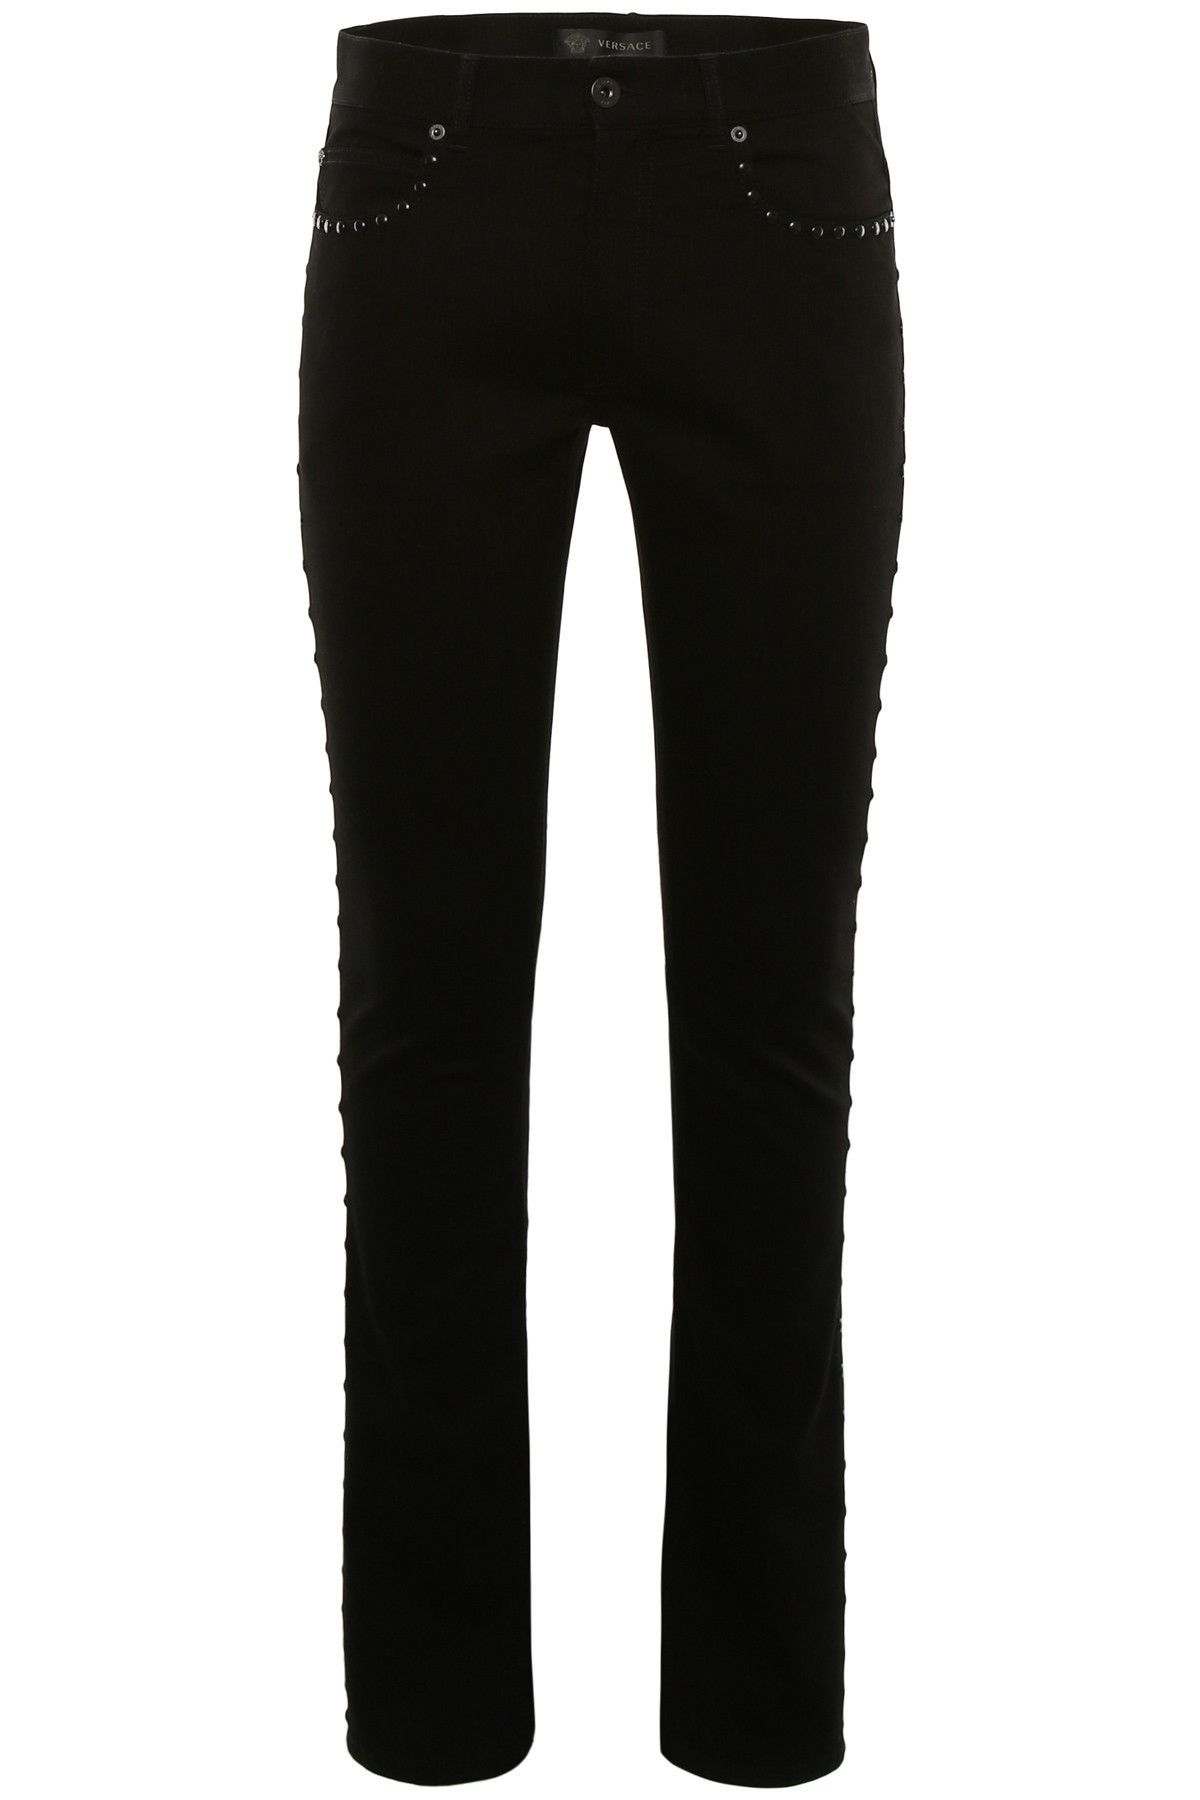 VERSACE Studded Jeans